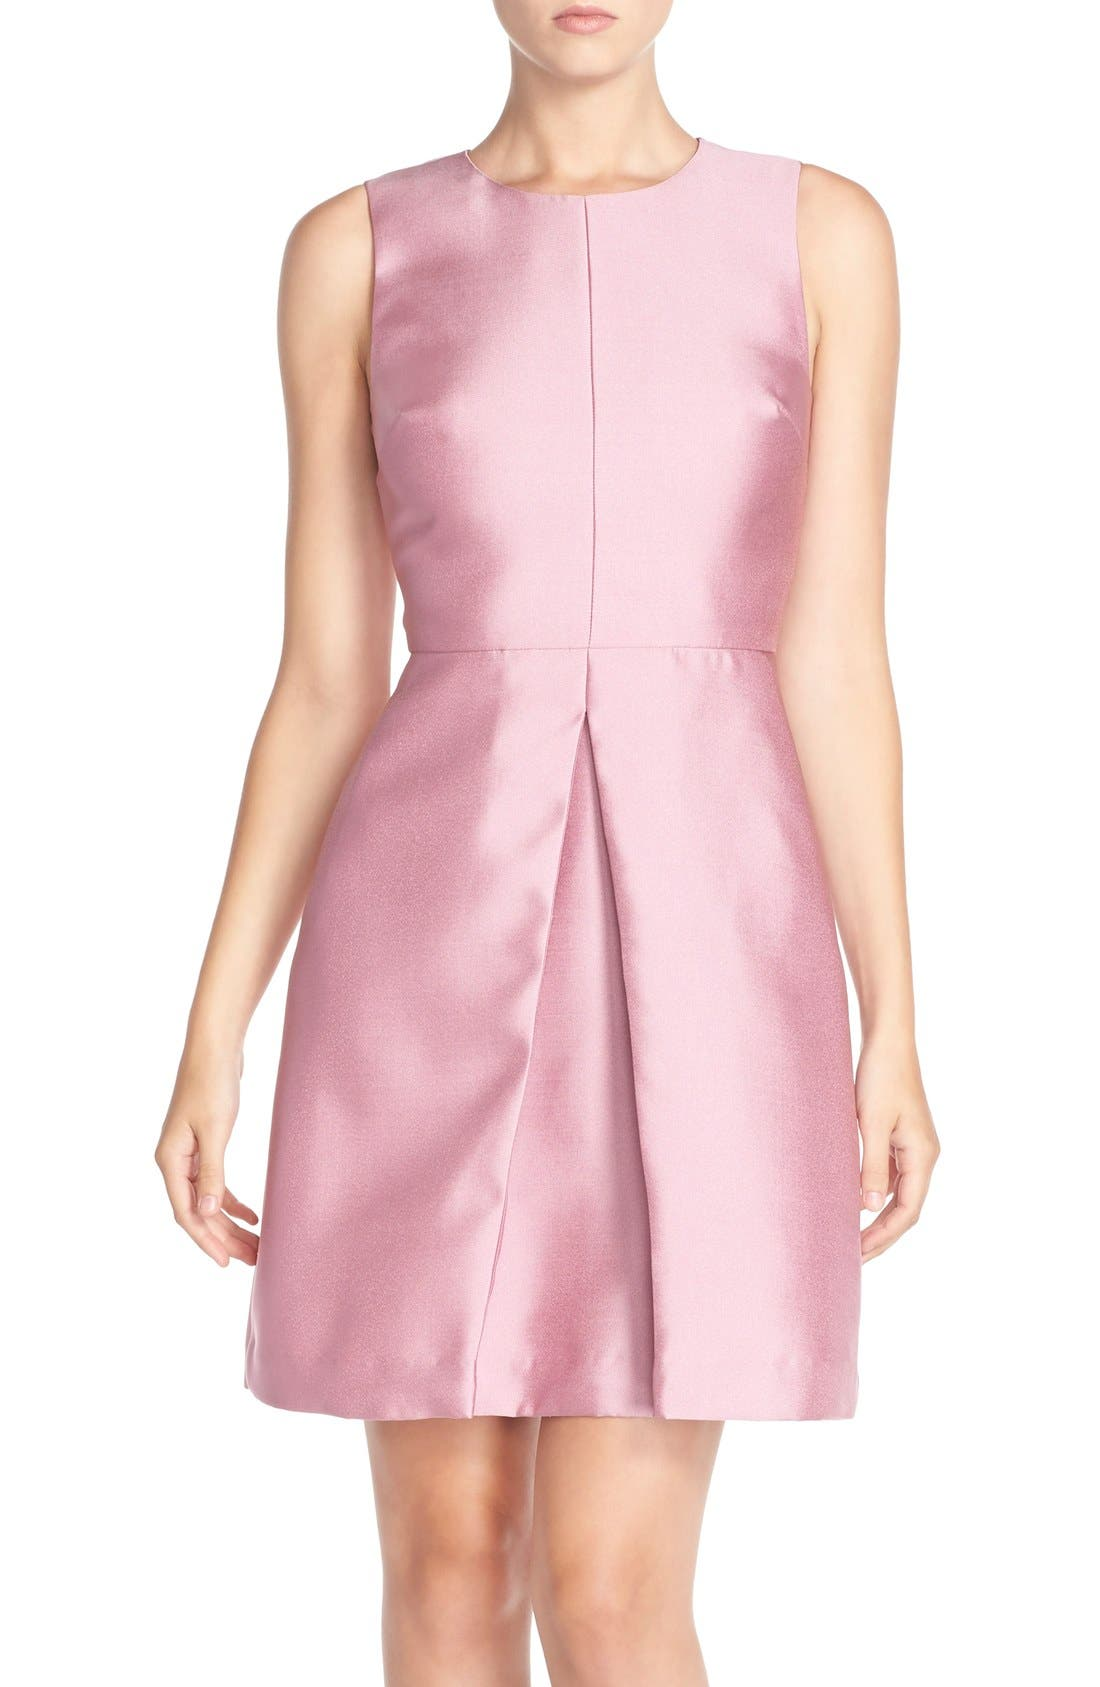 Alternate Image 1 Selected - ERIN erin fetherston'Sophie' Twill Fit & Flare Dress